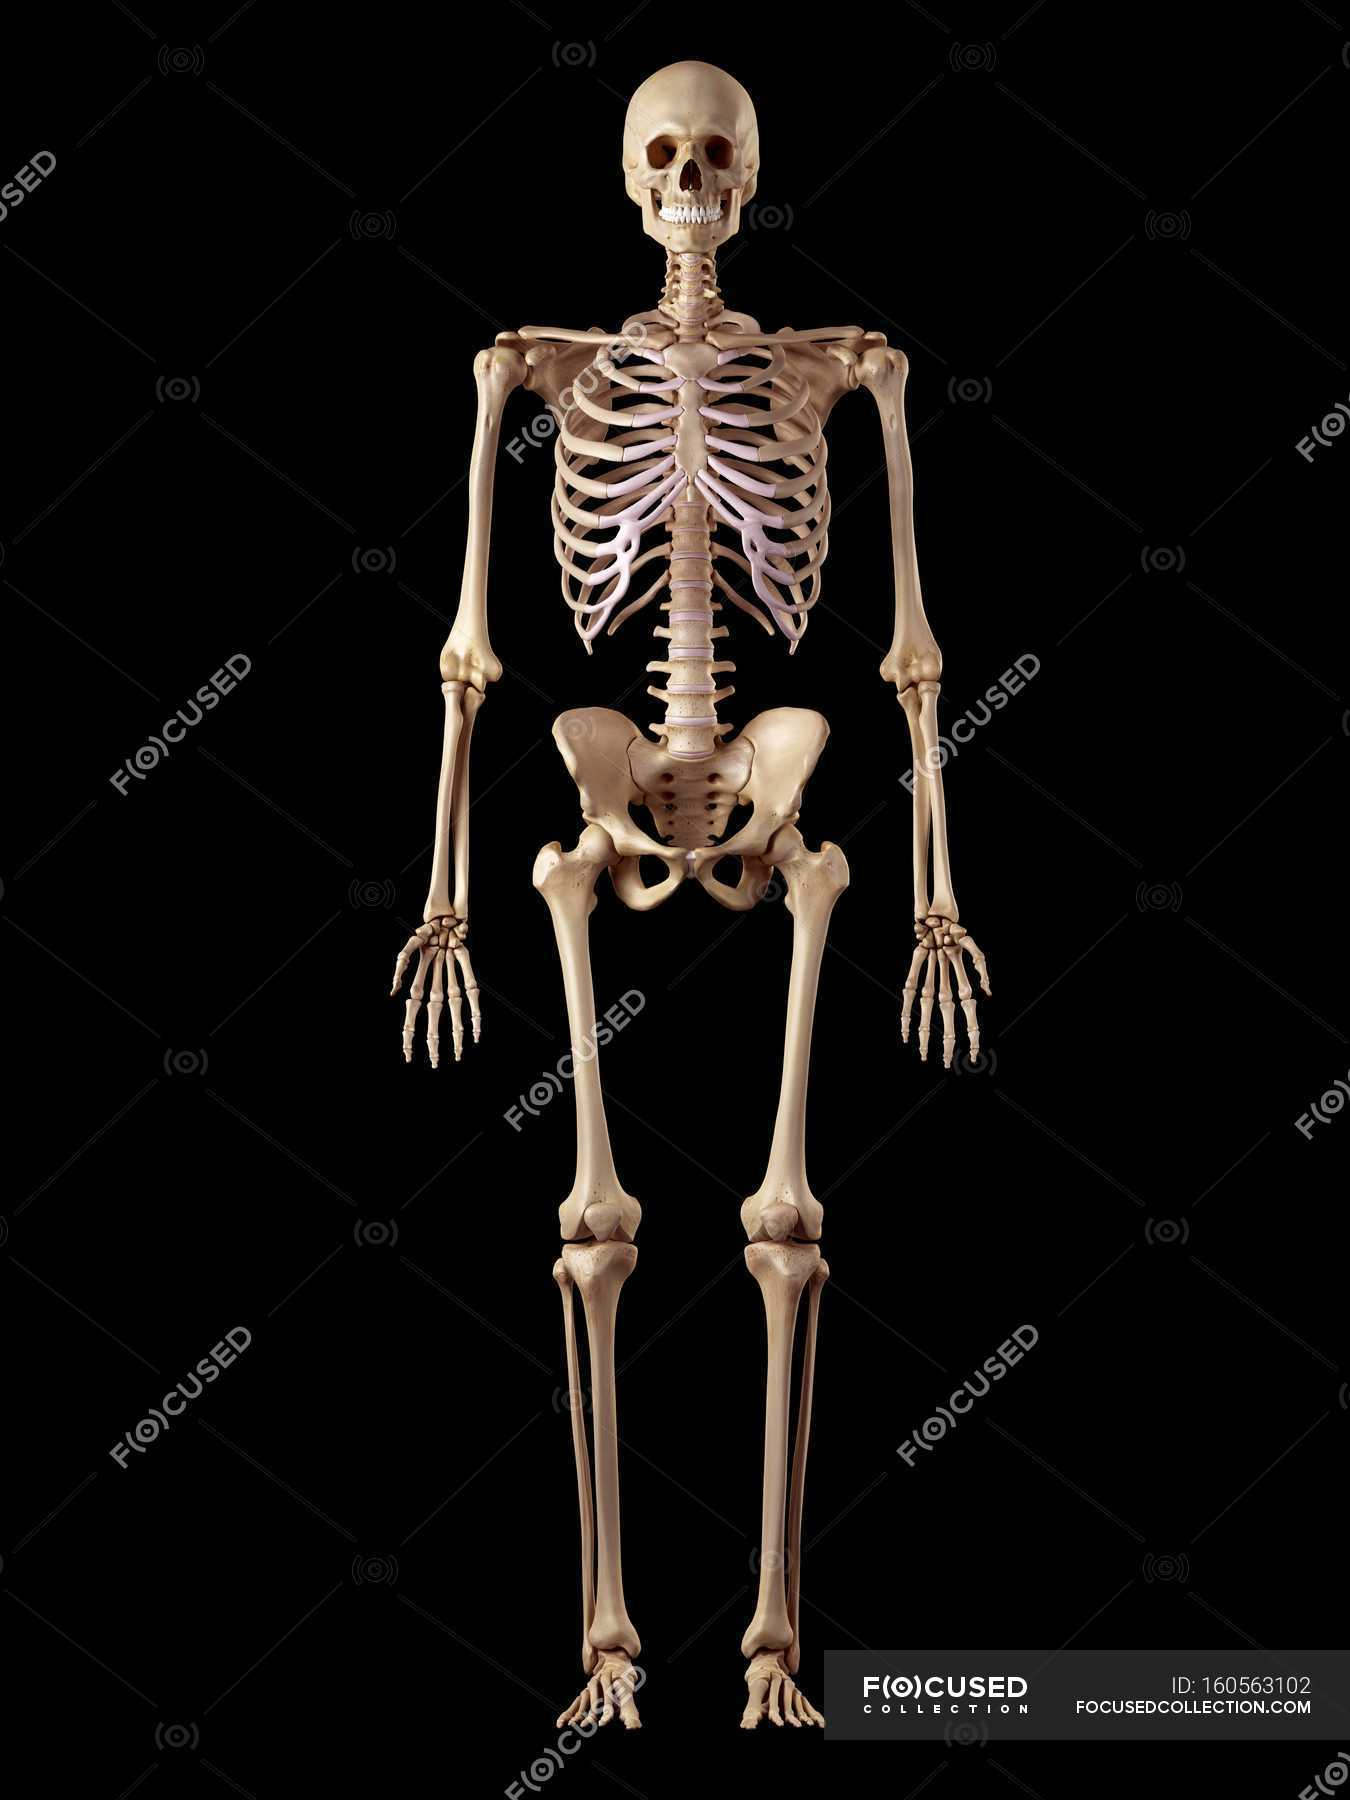 Human Skeletal Structure Front View Black Background Stock